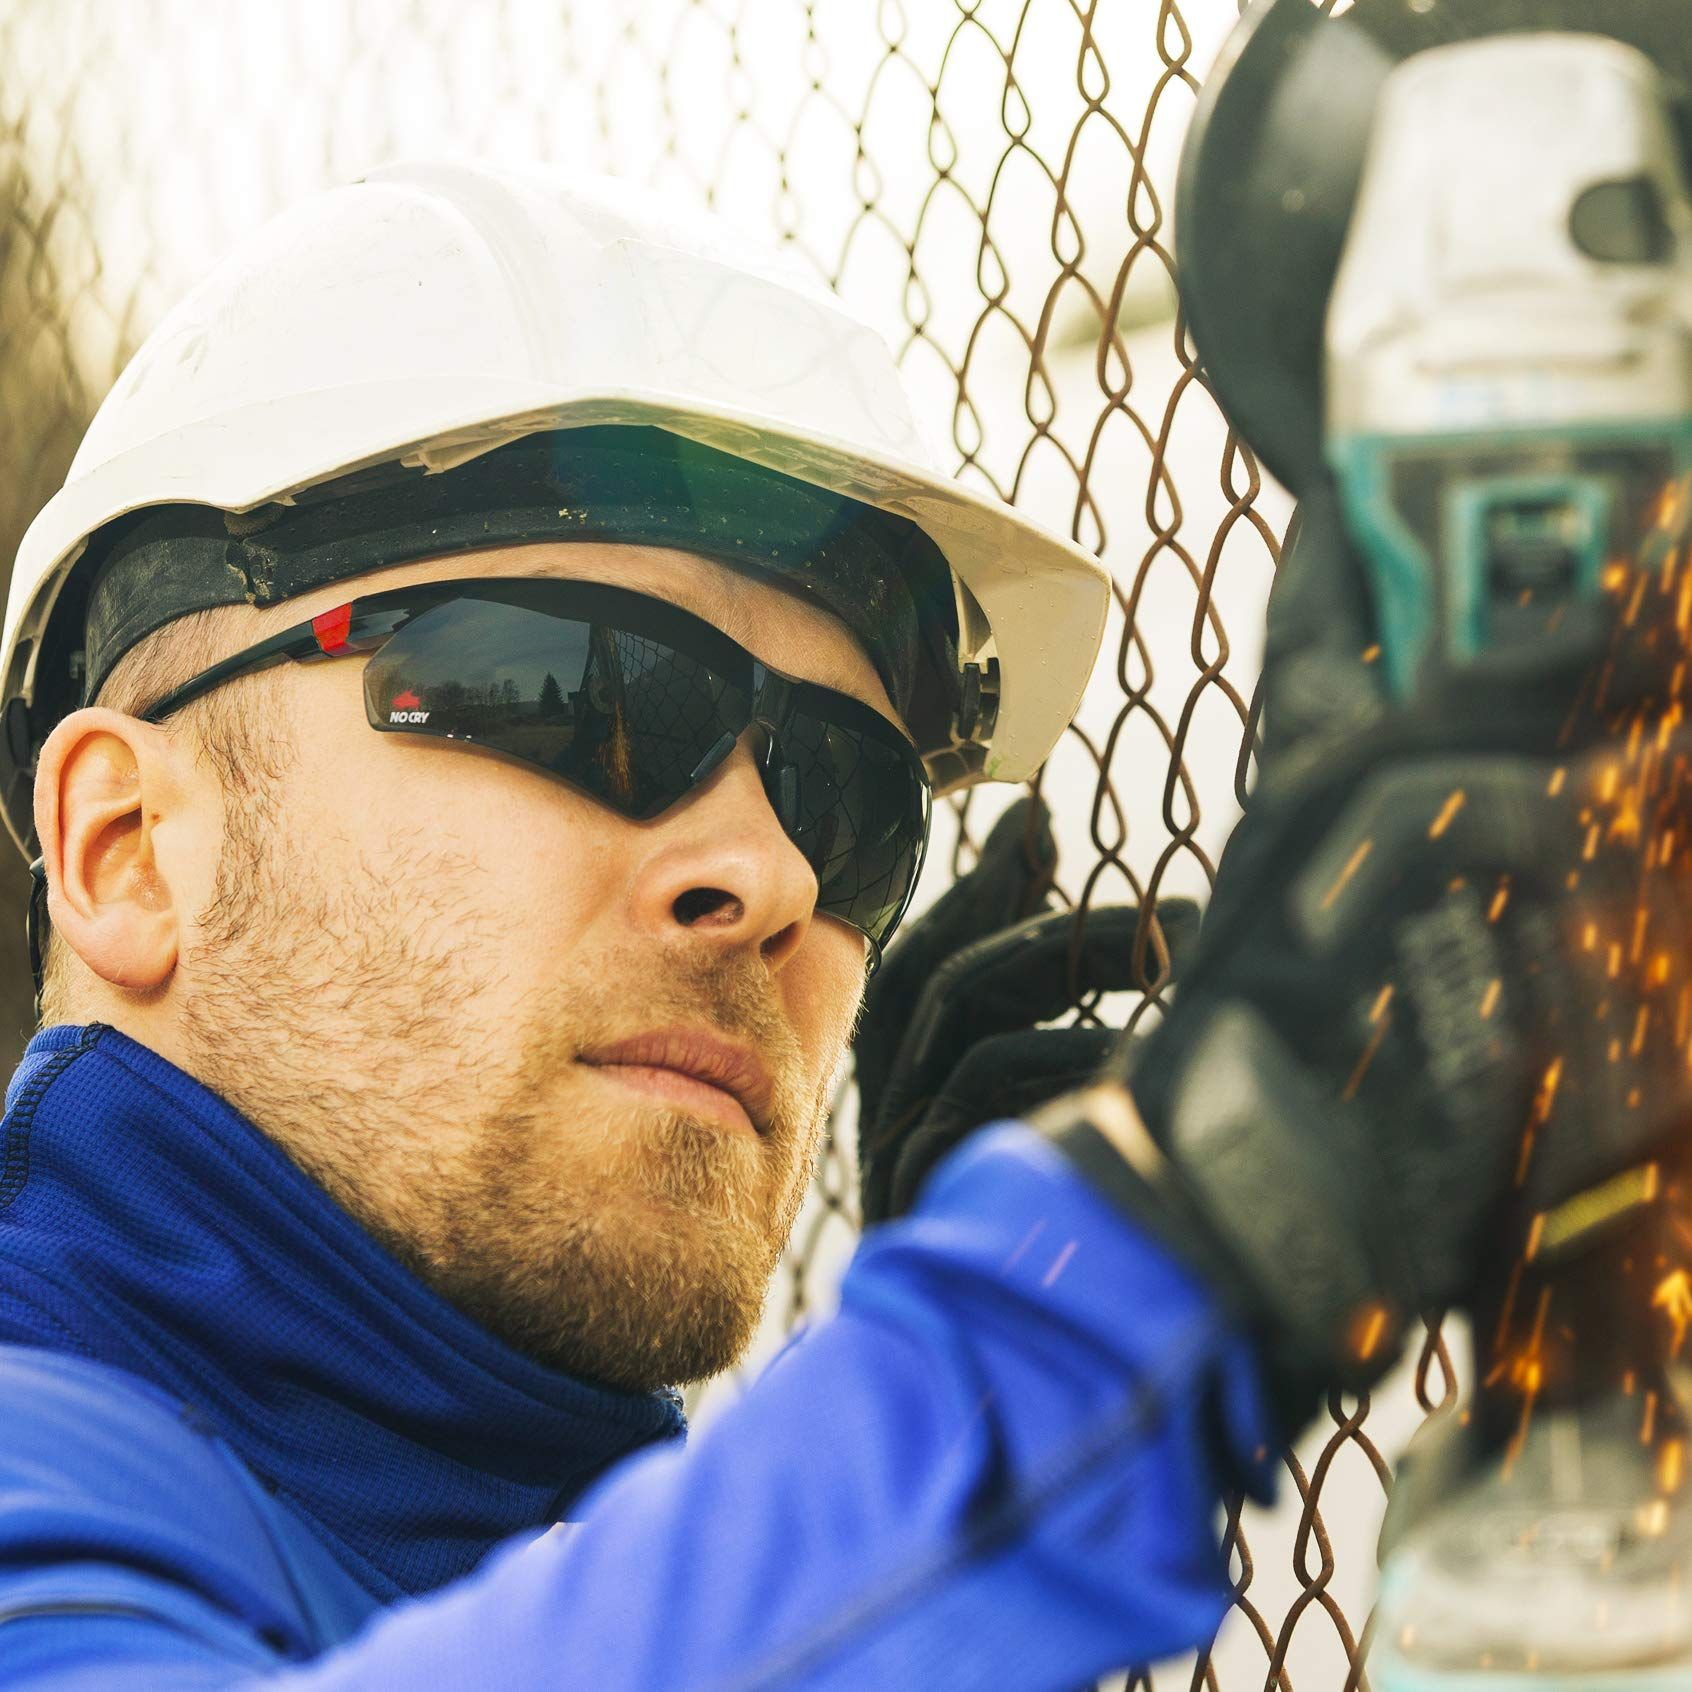 NoCry Work Safety sunglasses, Sunglasses, Sports safety